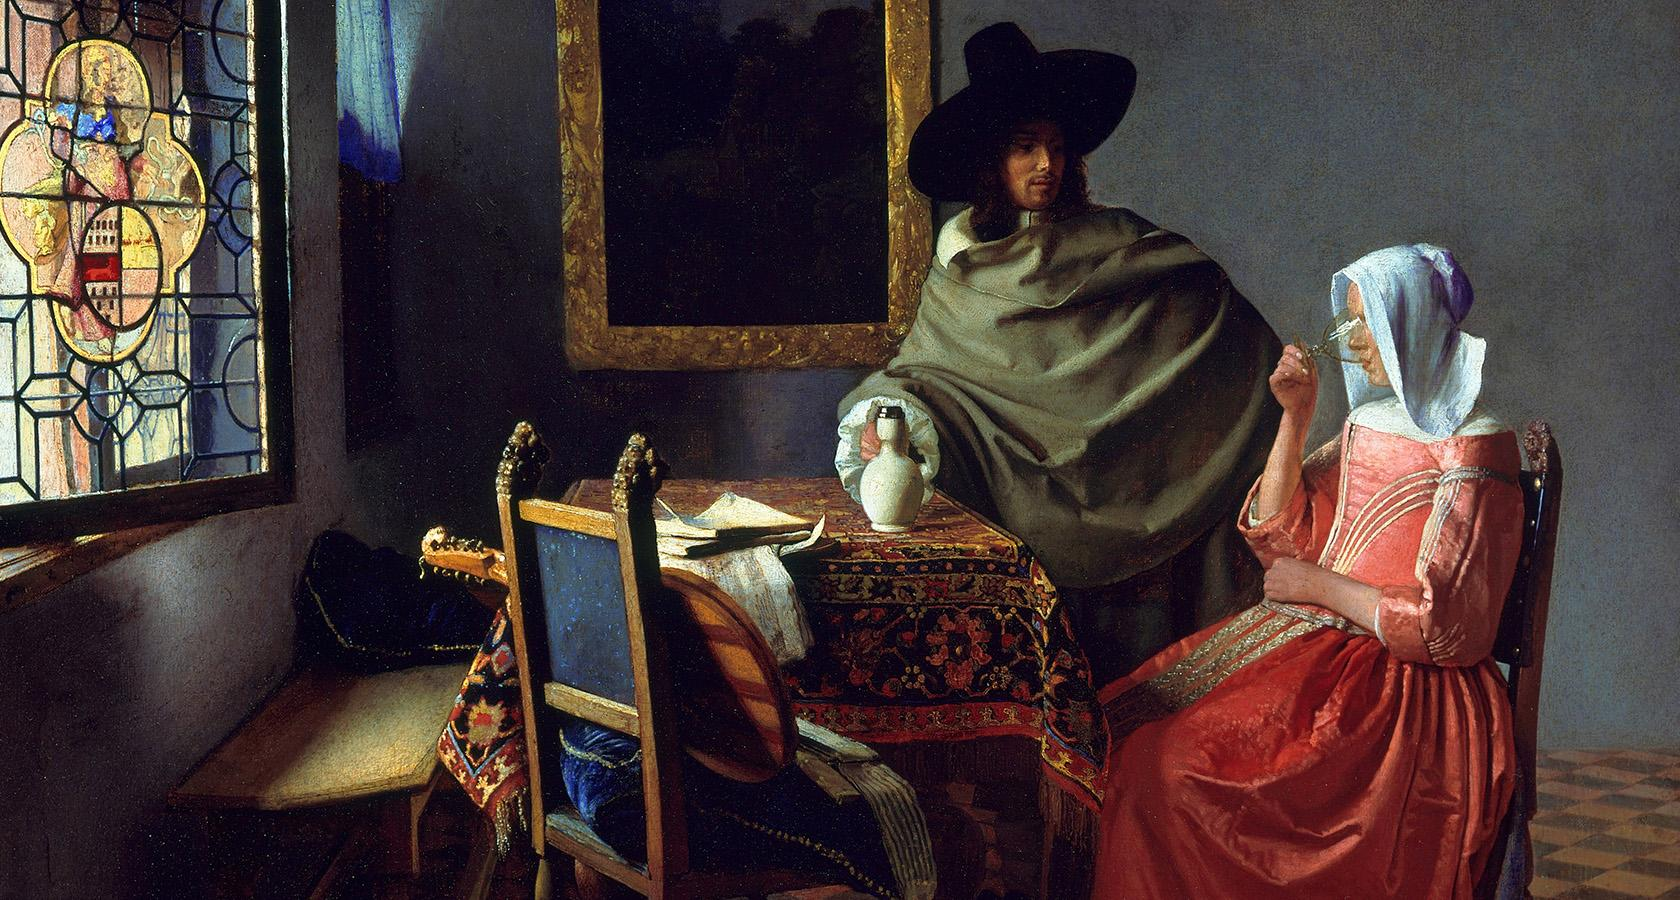 Is art design? Johannes Vermeer camera obscura painting controversy